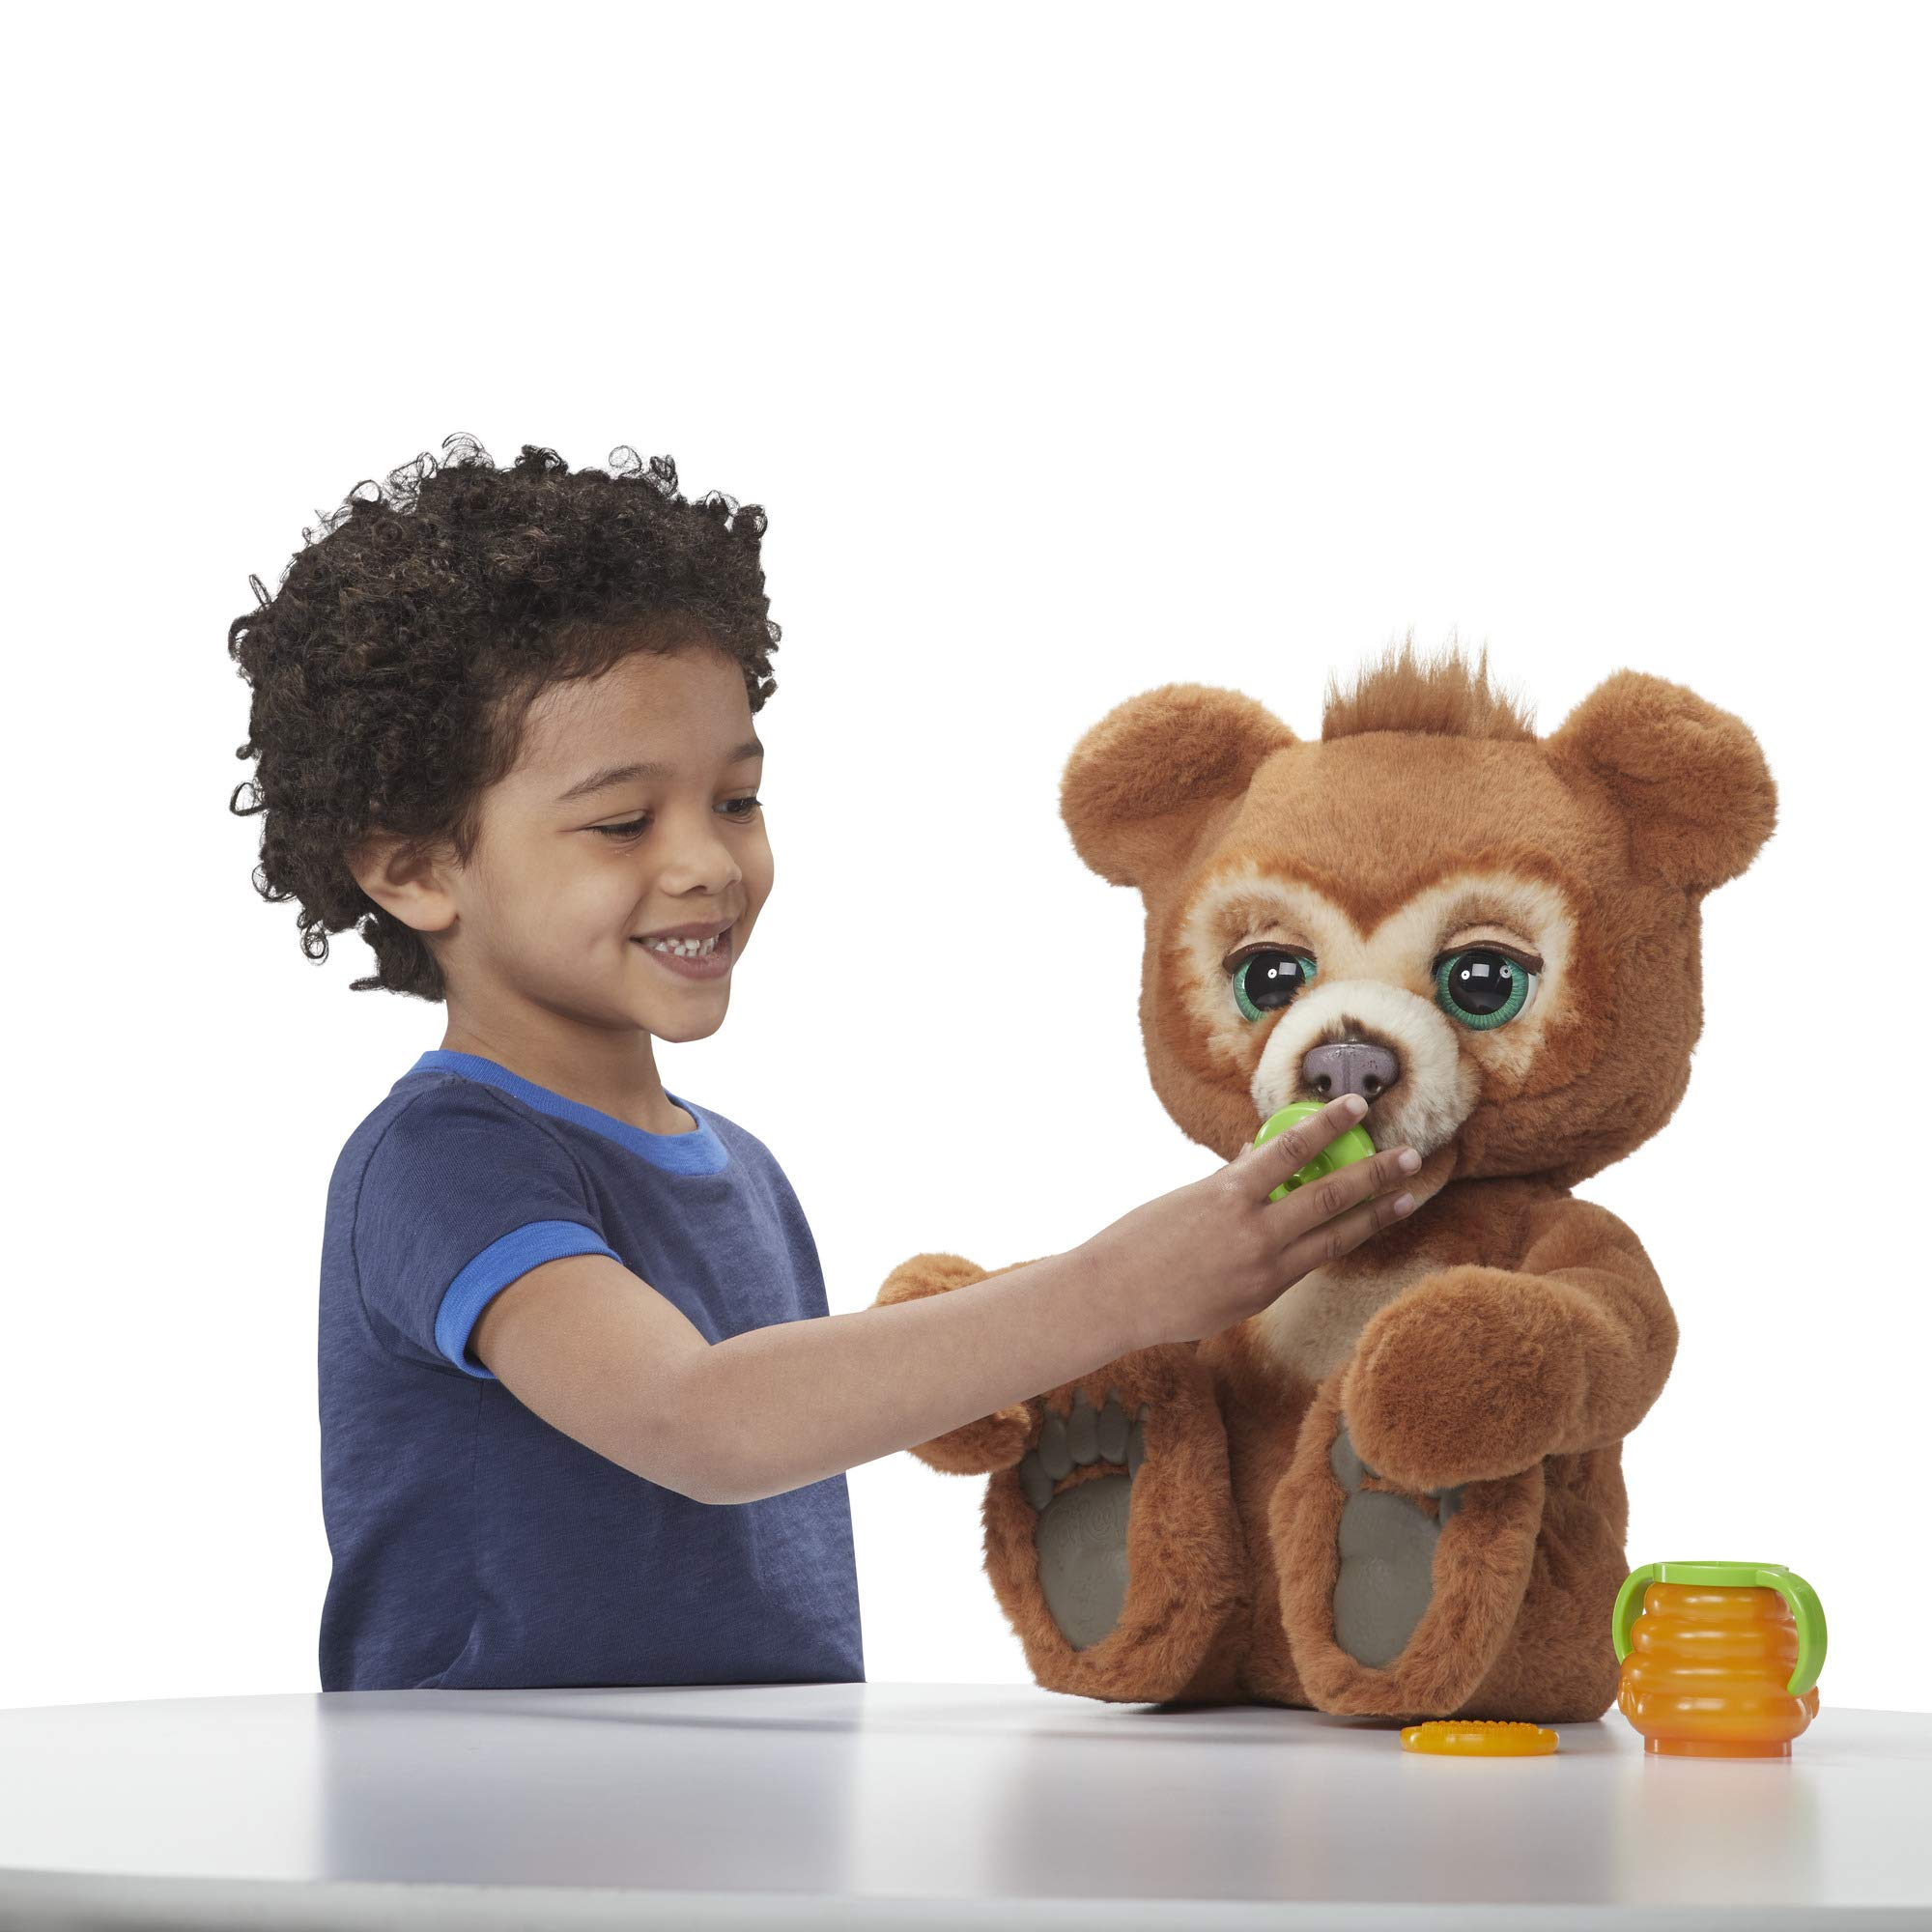 FurReal Cubby, The Curious Bear Interactive Plush Toy, Ages 4 and Up by FurReal (Image #9)